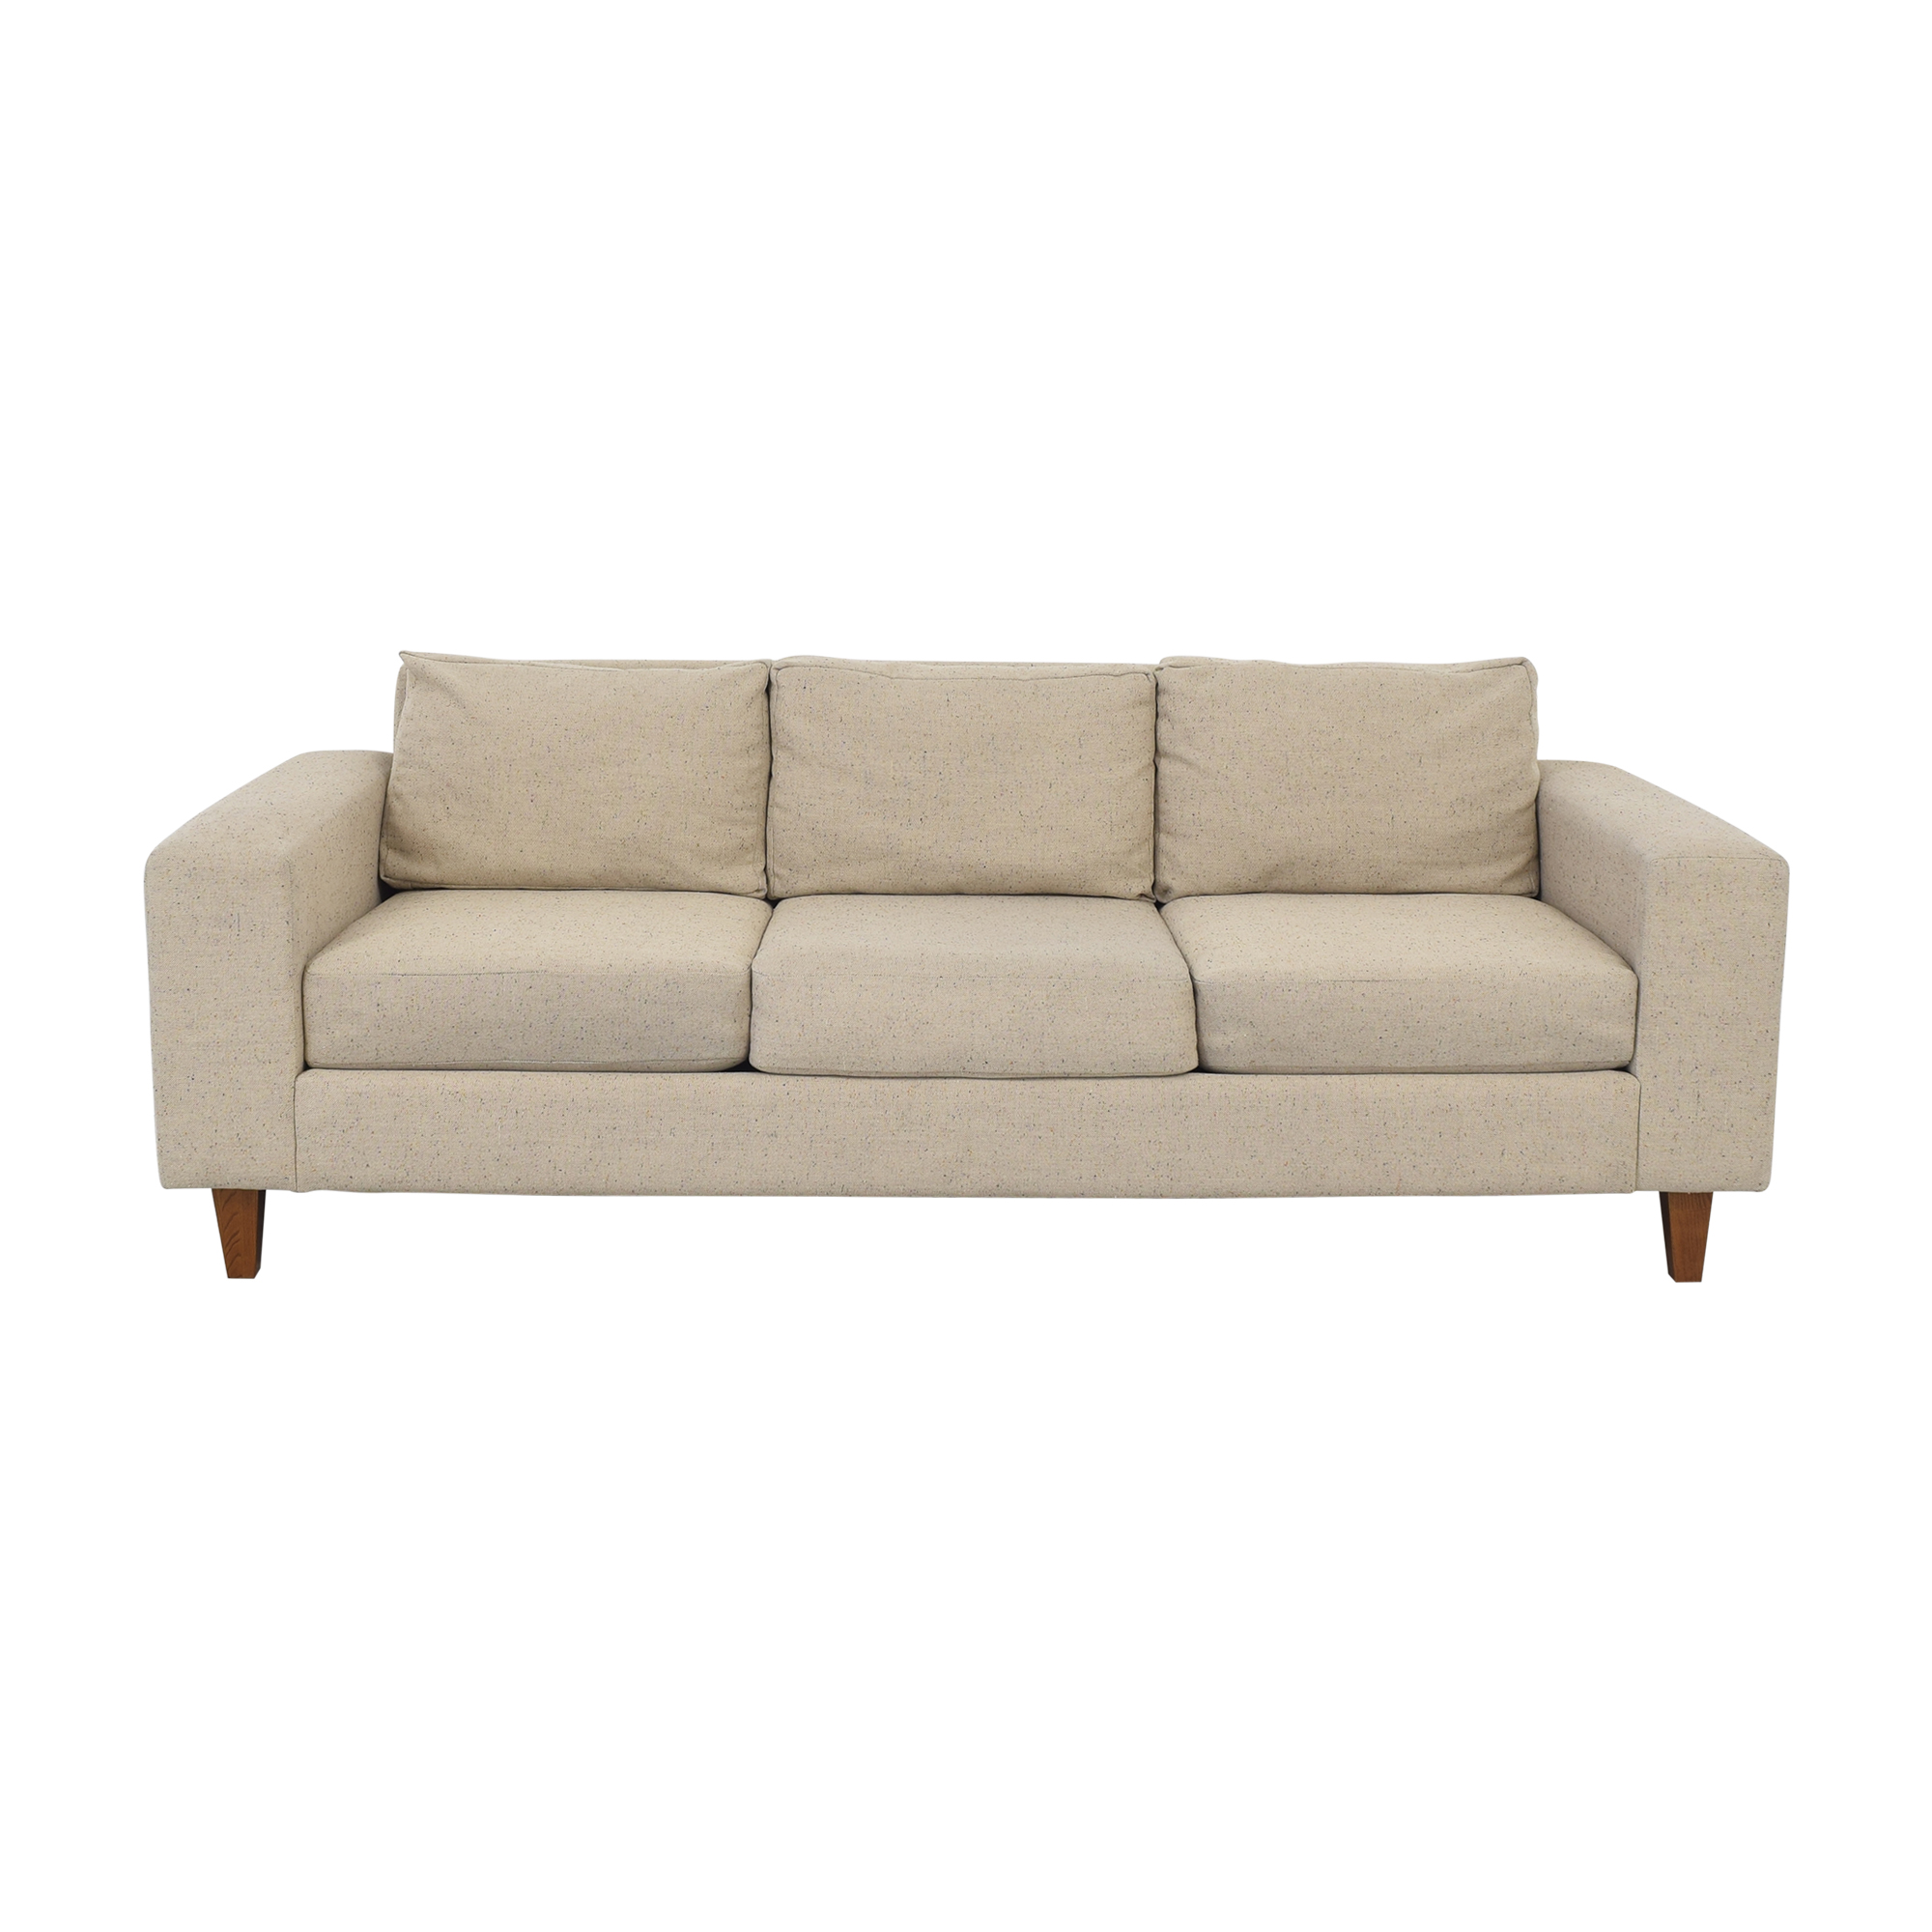 Urban Outfitters Urban Outfitters Percey Tweed Sofa coupon